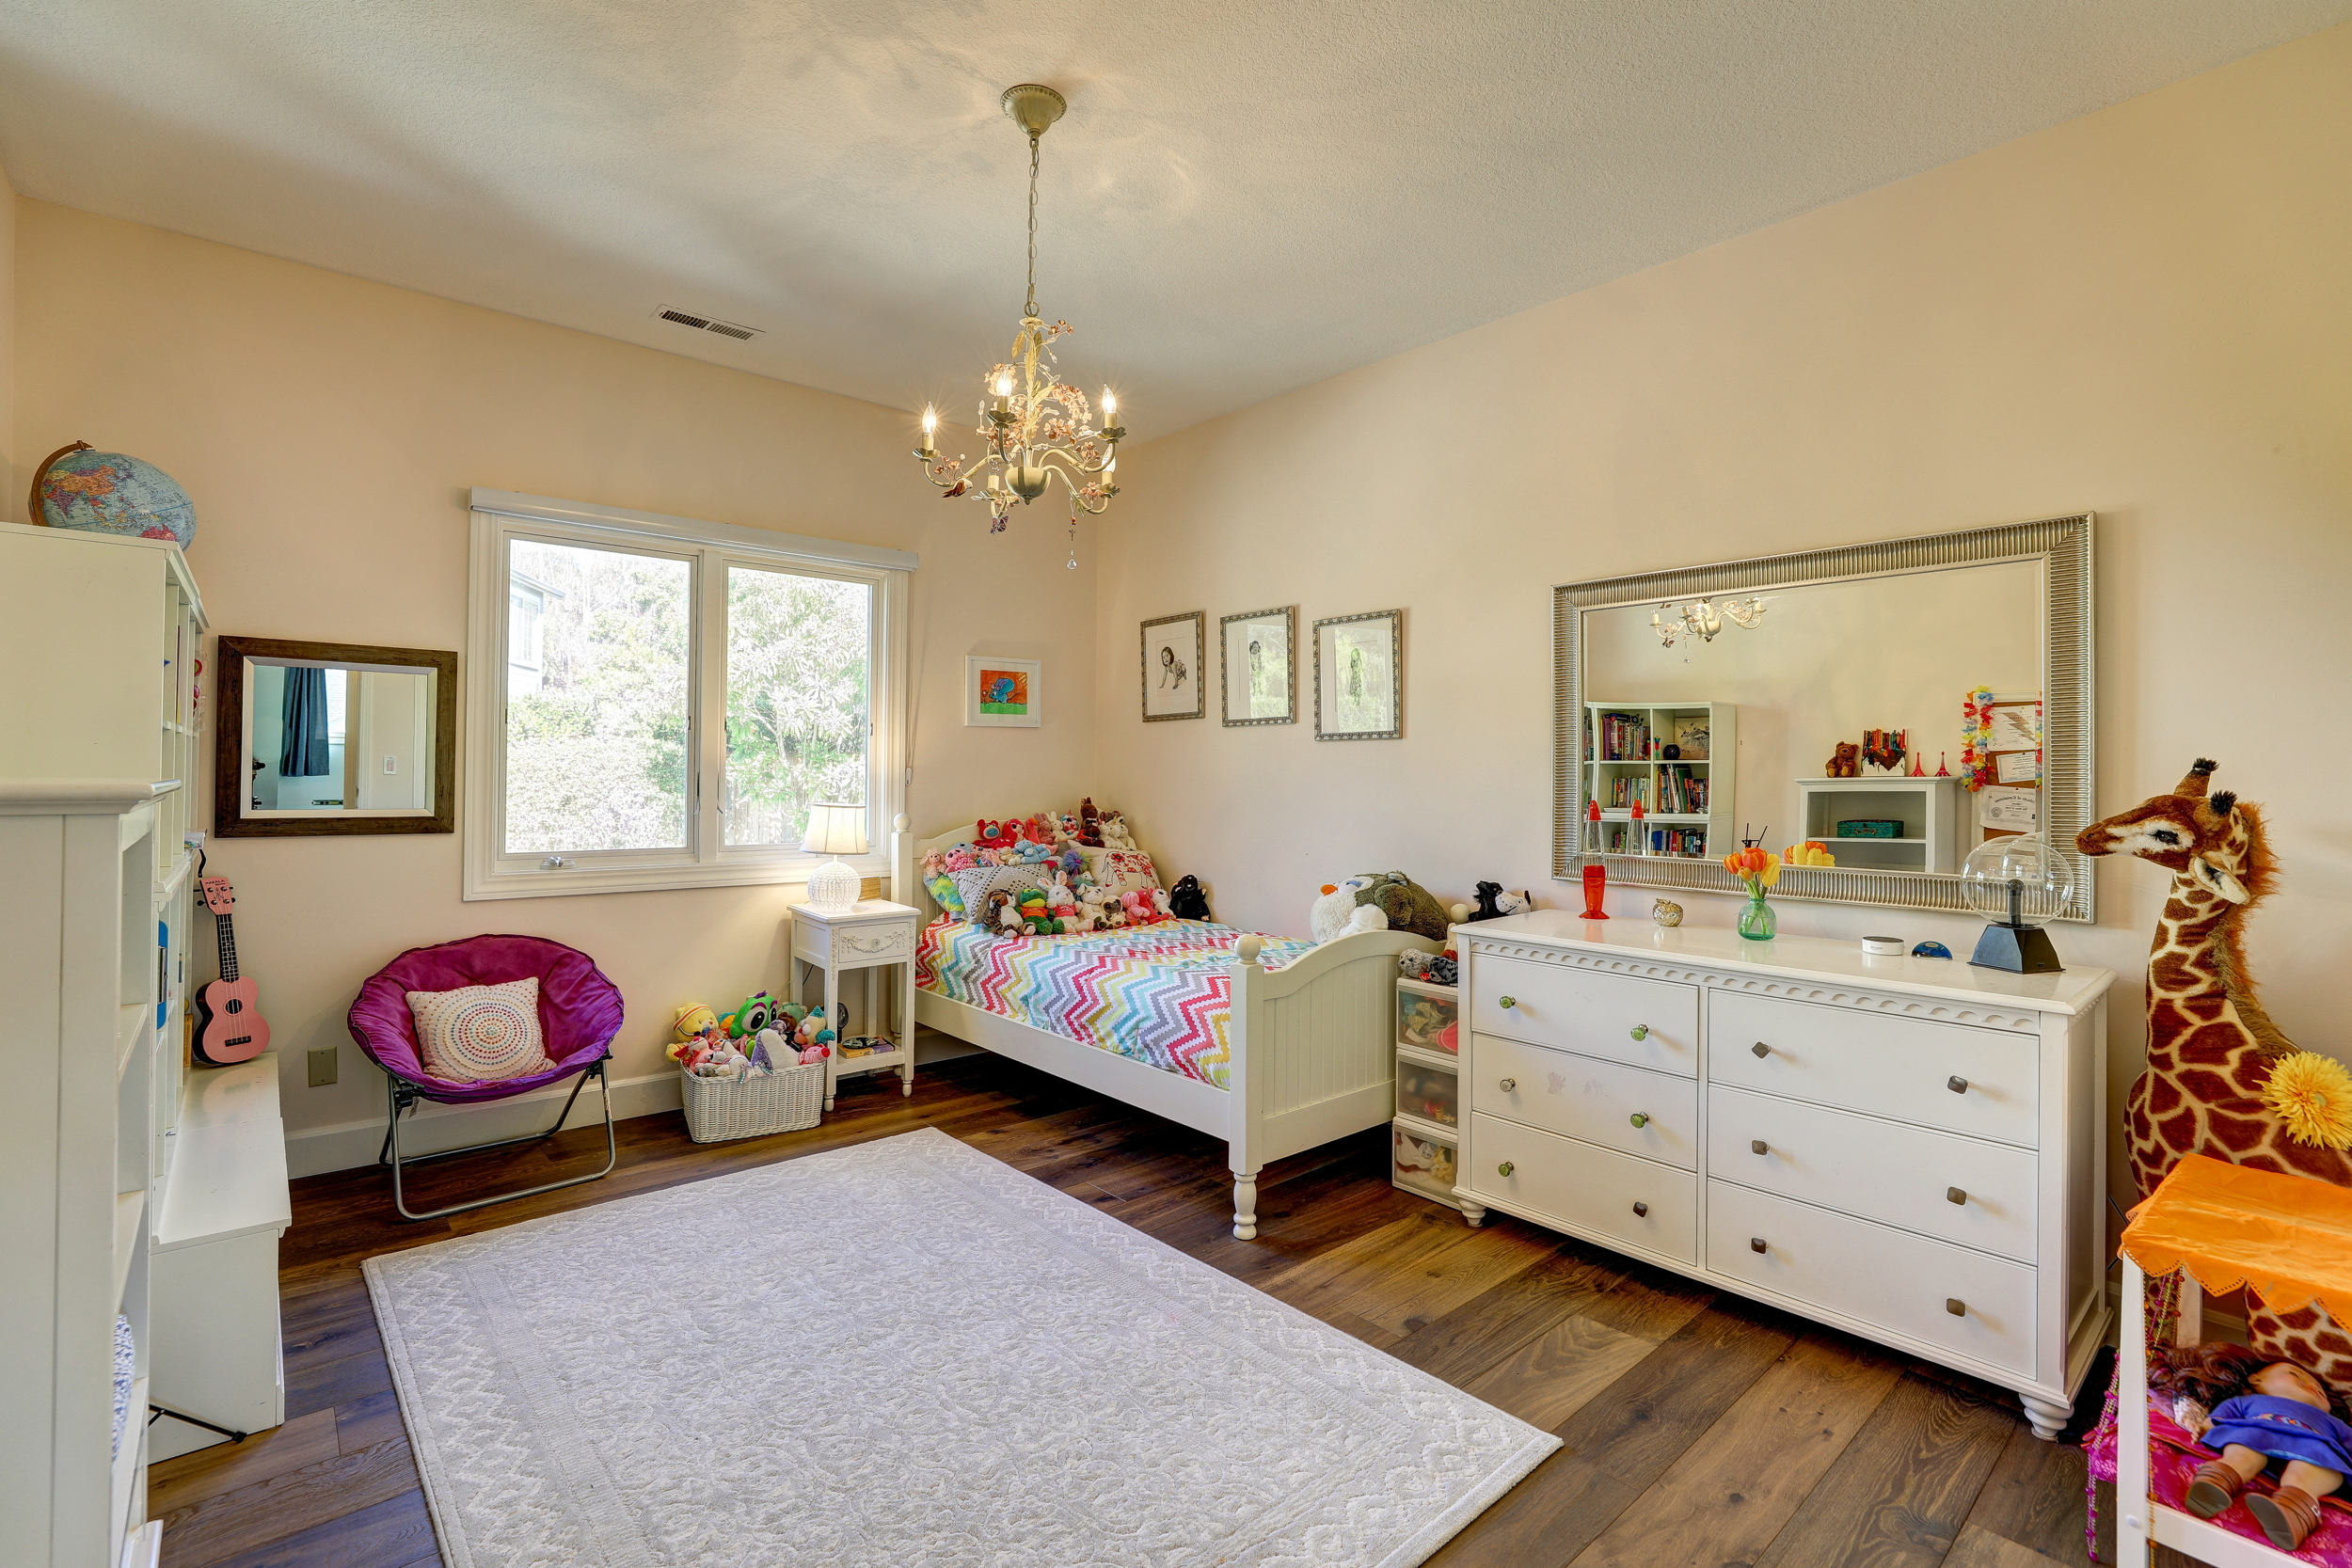 8Parkside 46 - Own Marin with Compass - Marin County Best Realtor.jpg